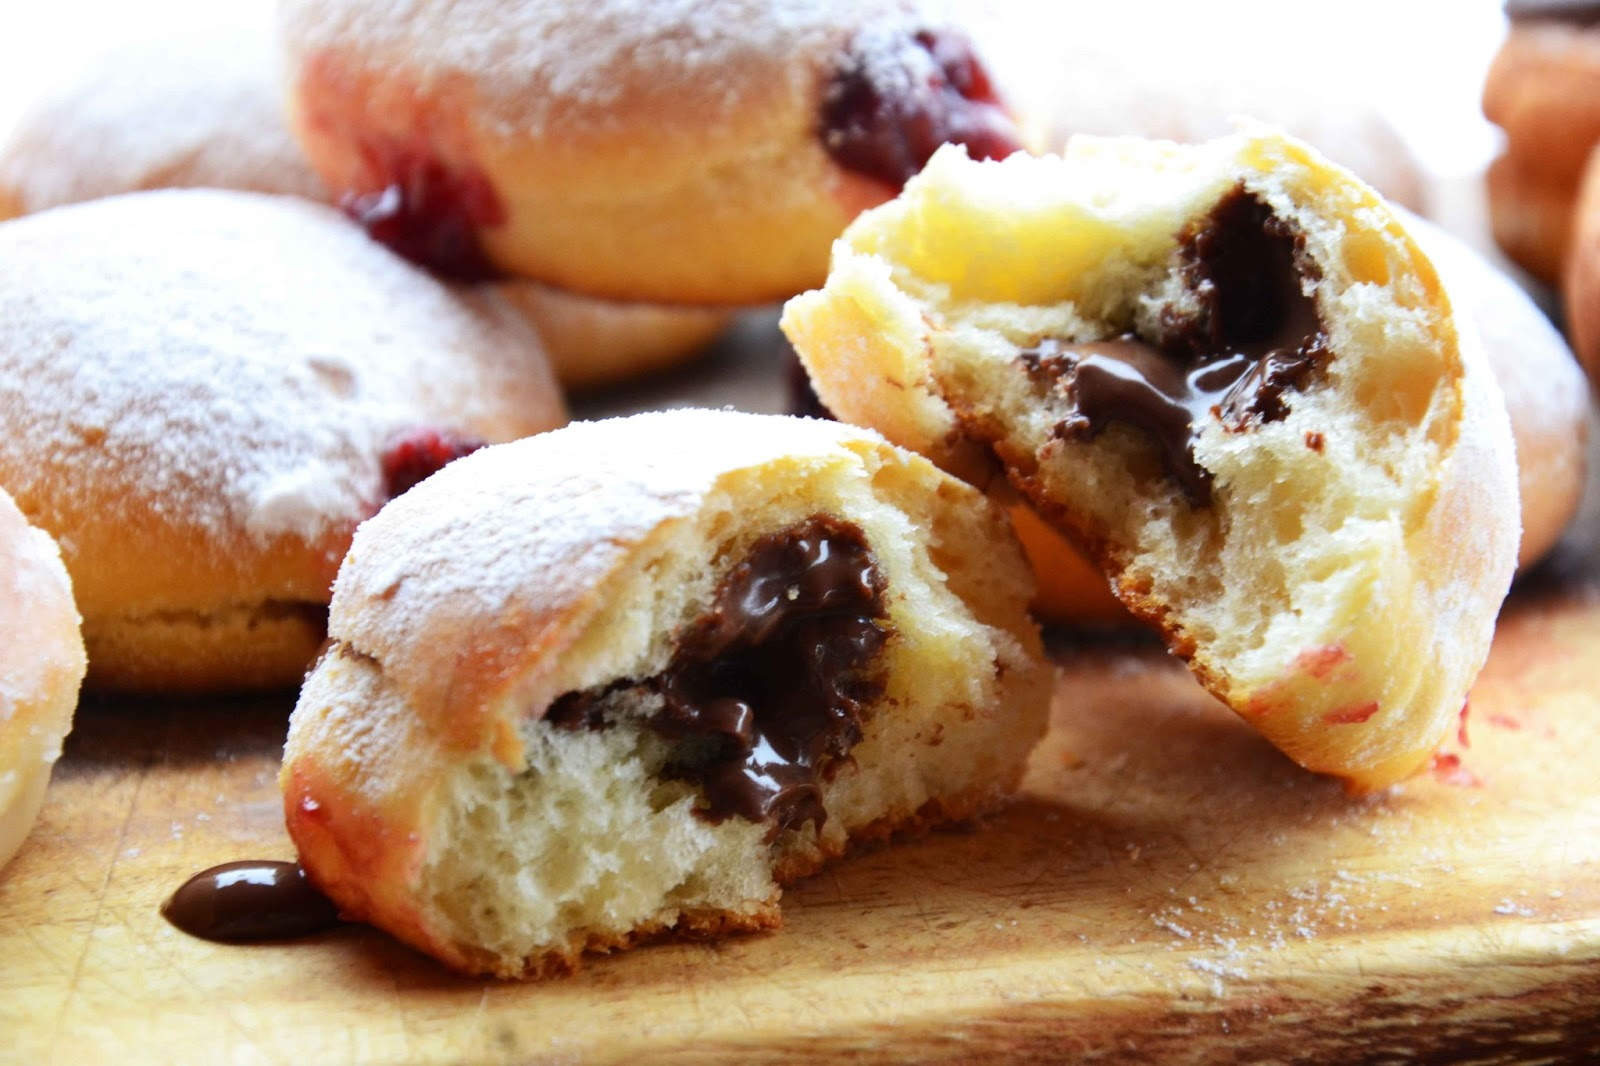 The eccentric Cook: Nutella stuffed baked Doughnuts